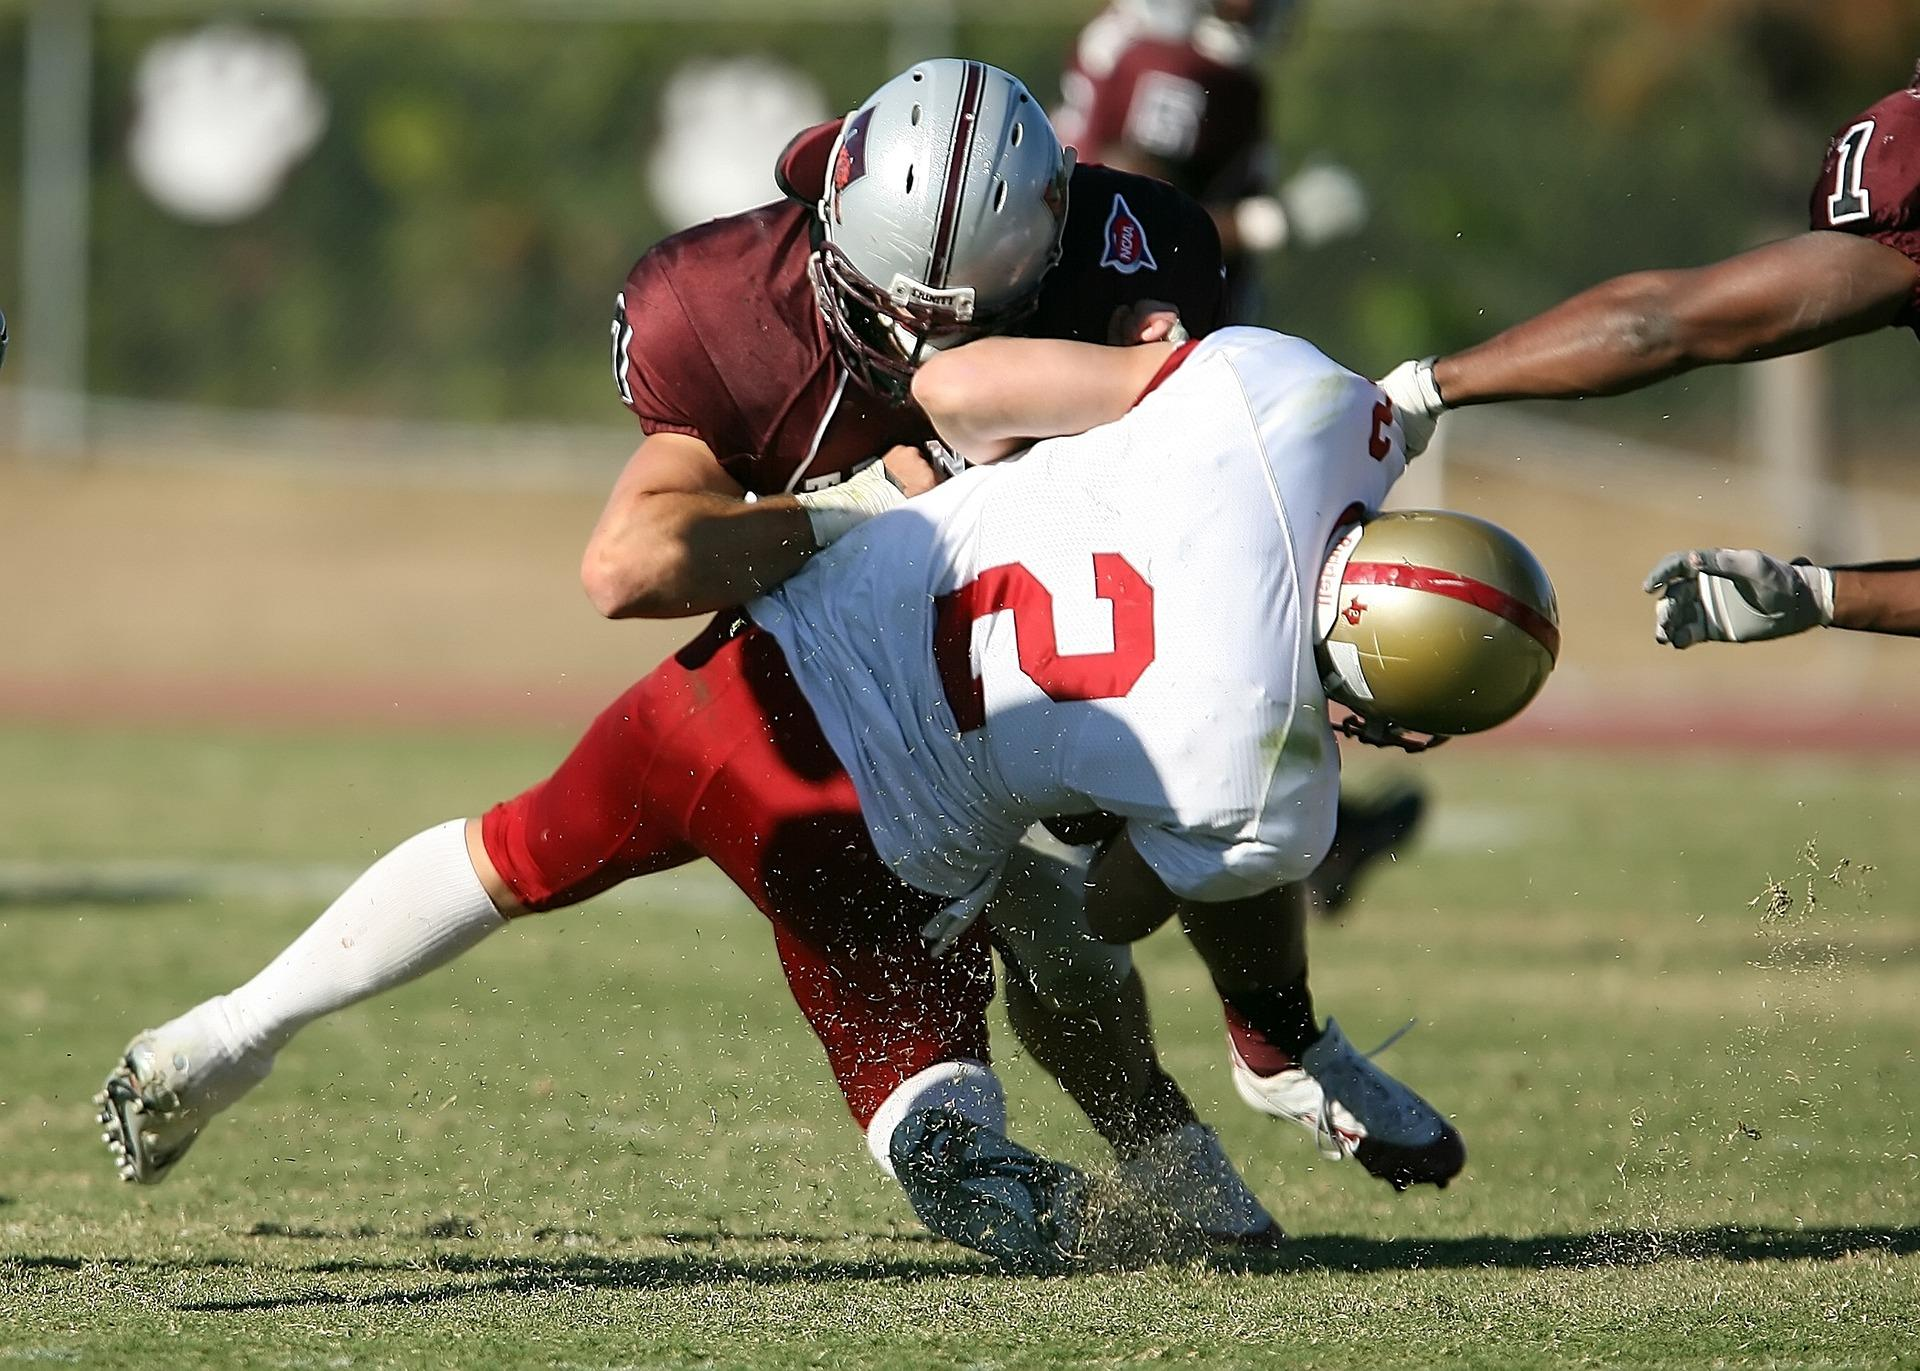 Tackle Football  >> Duerson Act Would Ban Tackle Football For Illinois Kids Under Age